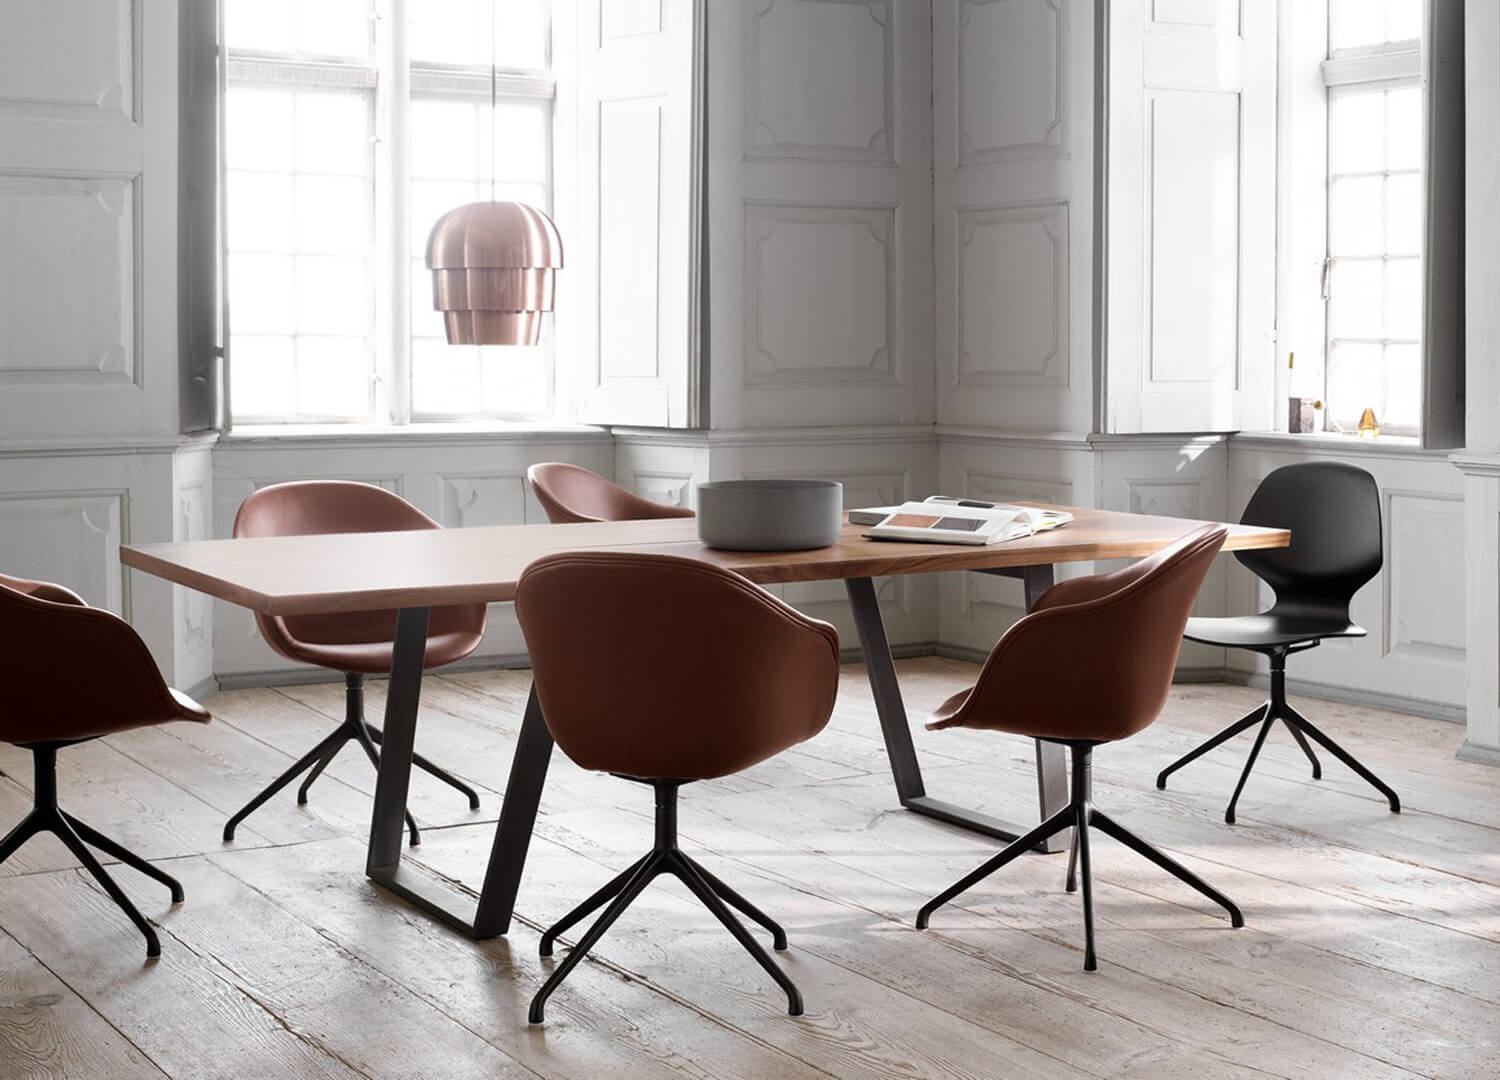 Miraculous Vancouver Dining Table By Boconcept Est Living Design Uwap Interior Chair Design Uwaporg